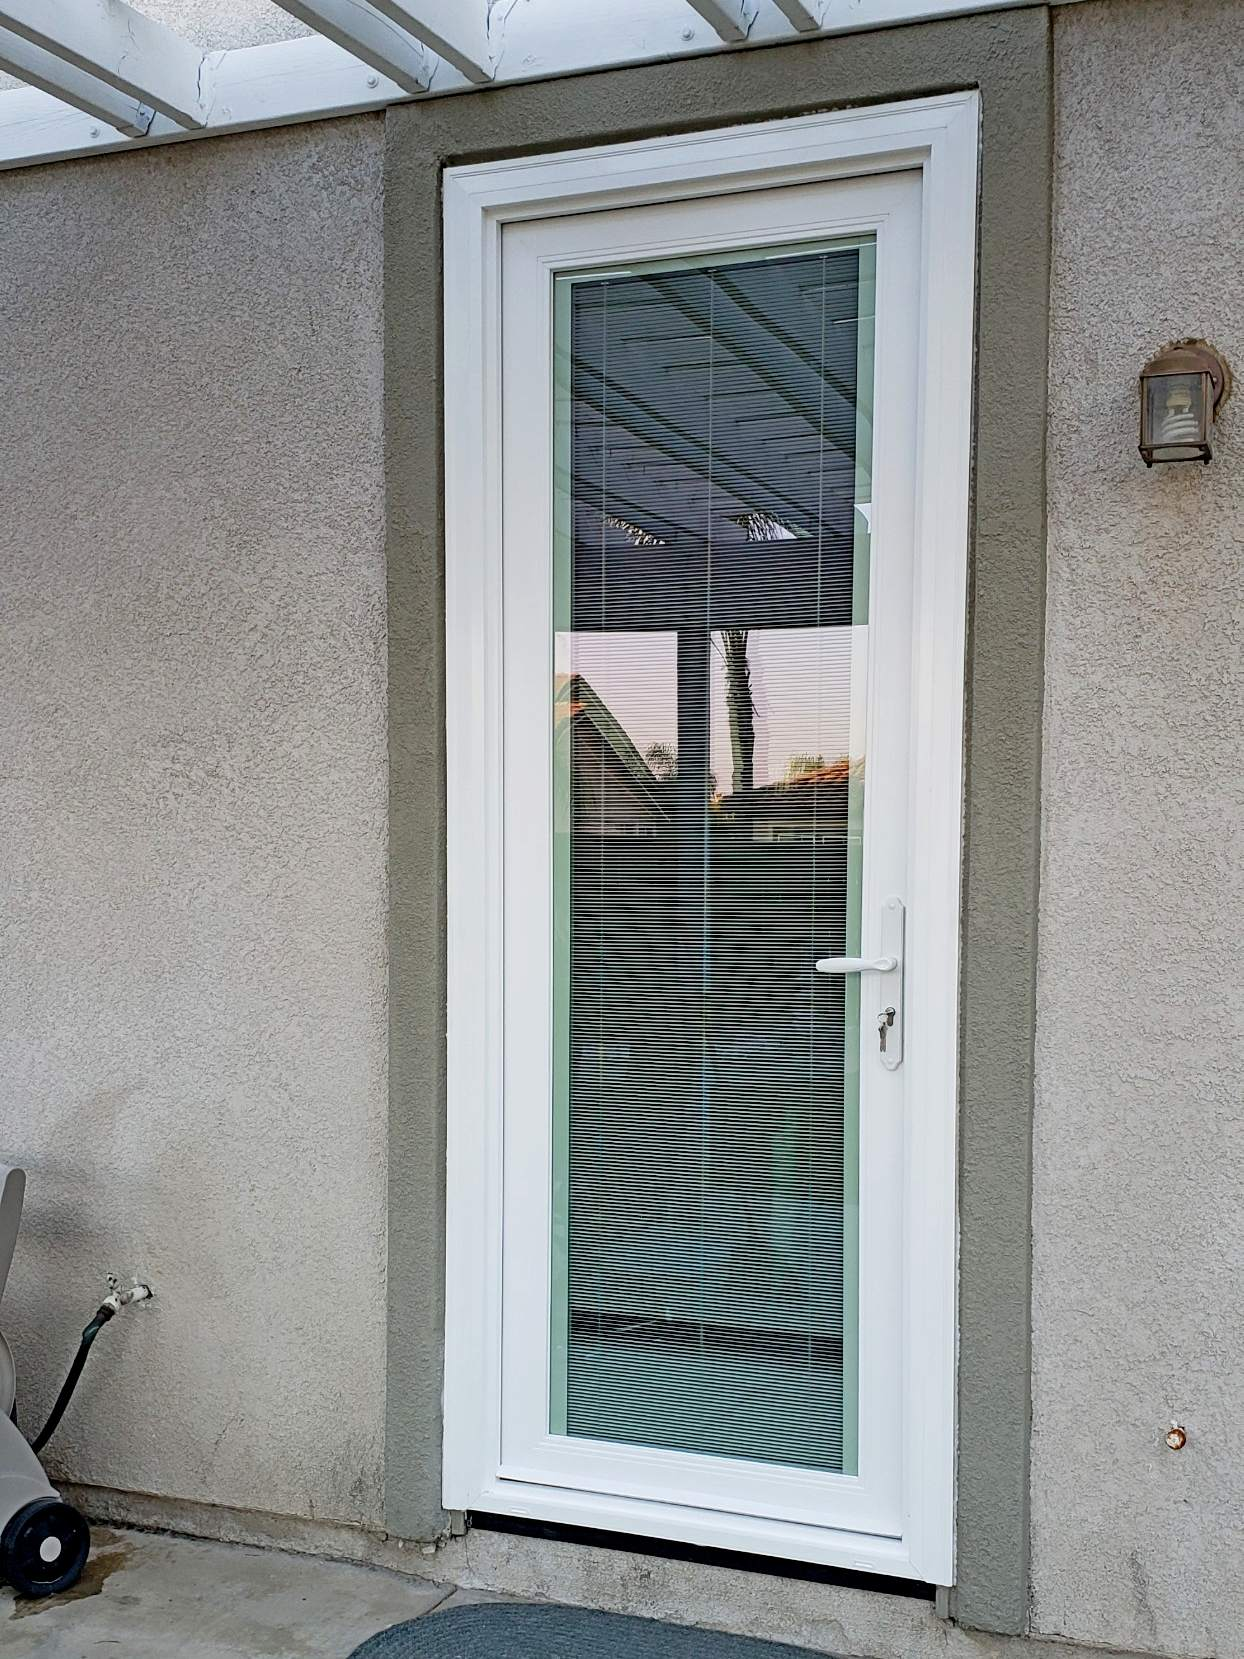 Door with Blinds between Glass Bakersfield